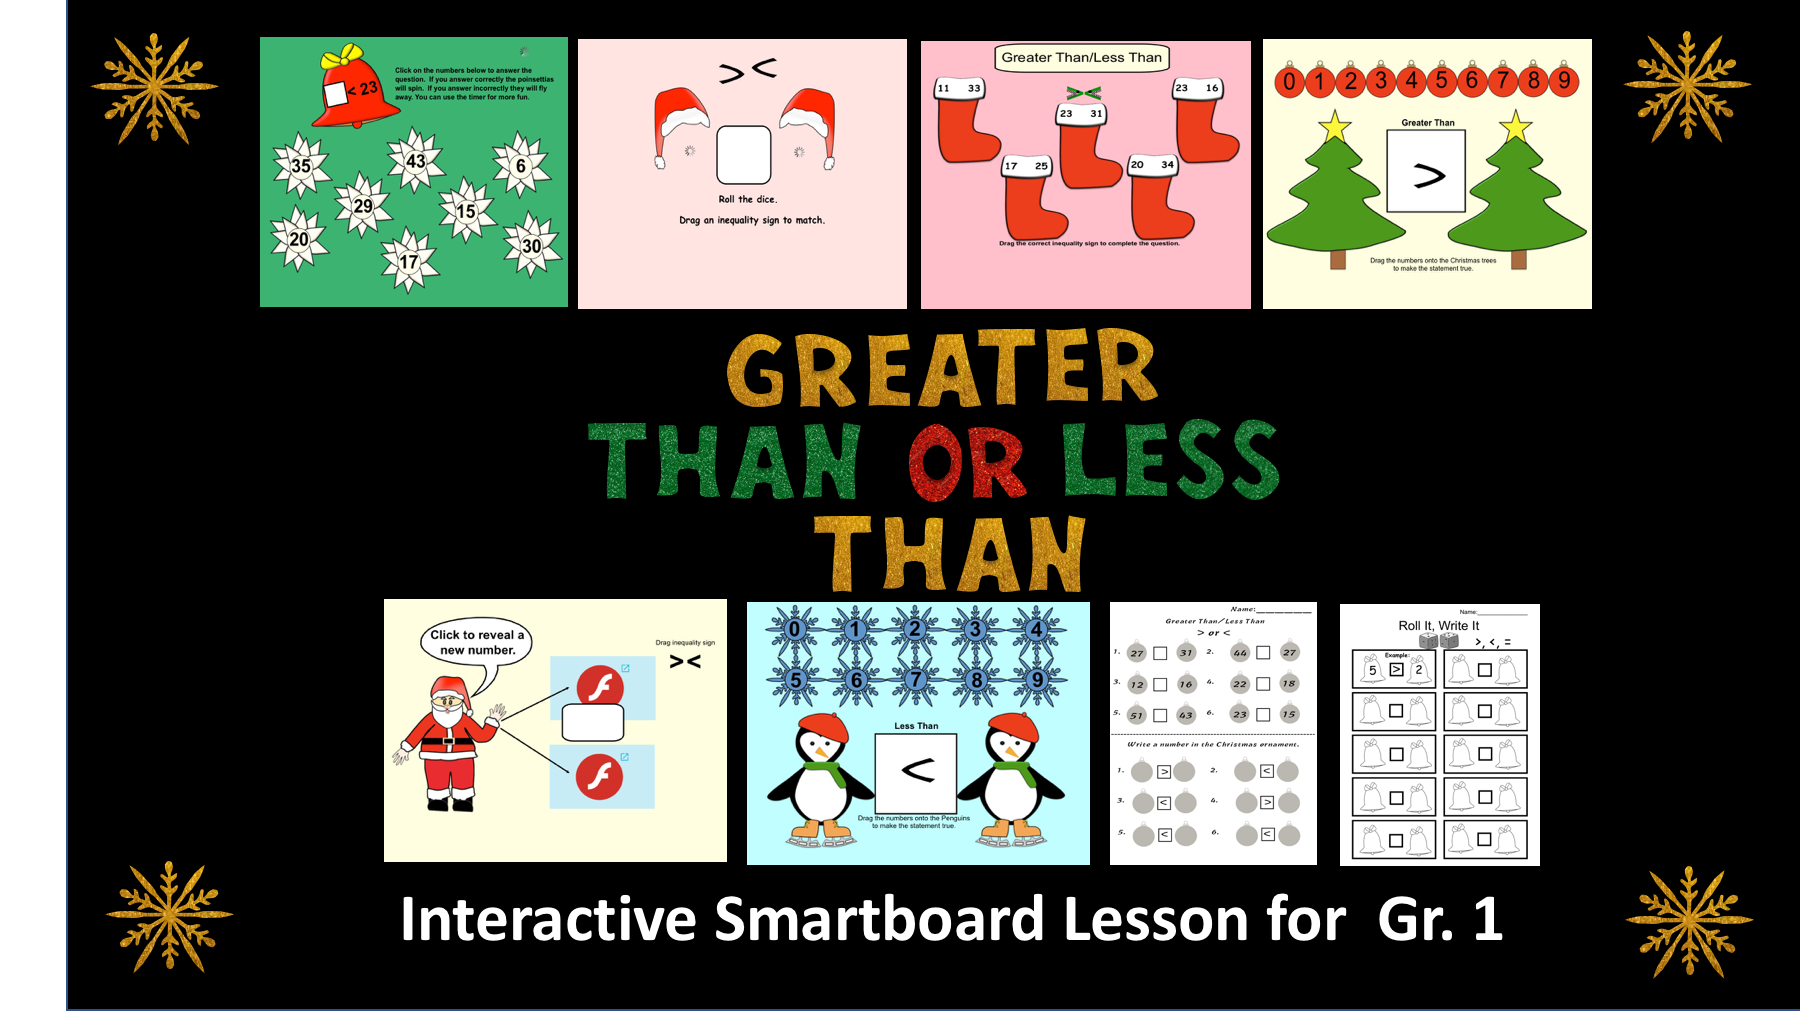 Greater Than Less Than Interactive Smartboard Lesson